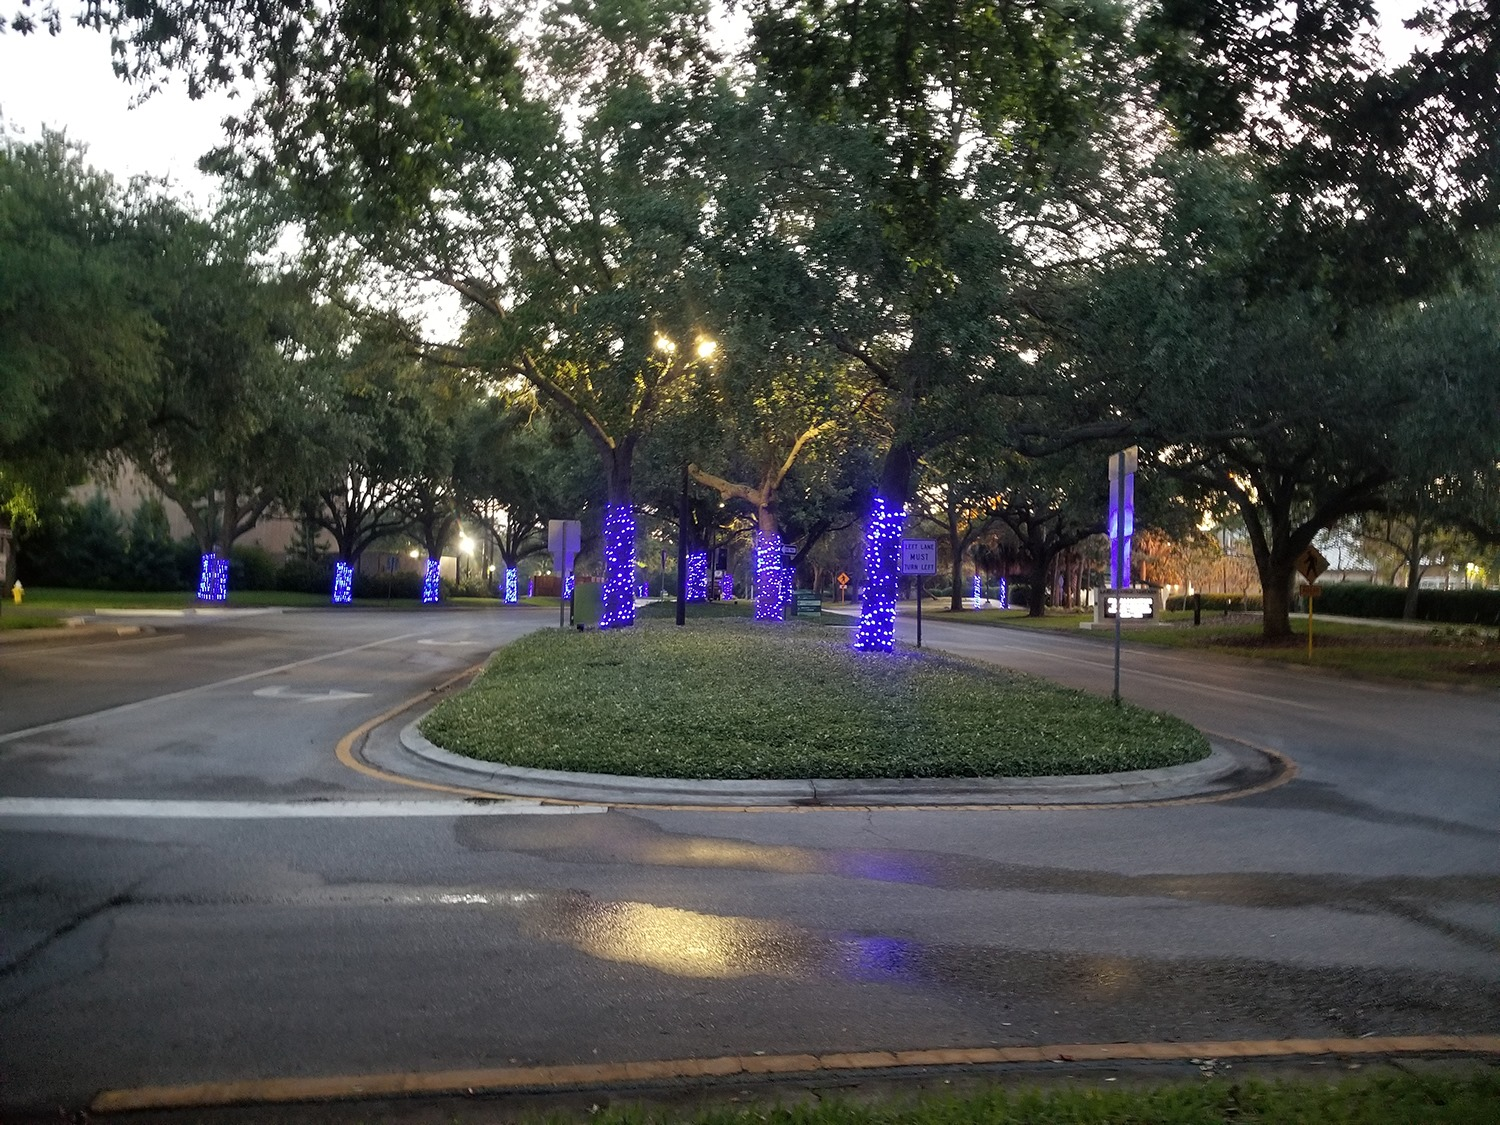 City-of-Largo-Police-Department-Lit-up-Blue-for-Paint-the-Twon-Blue-2021-FBITCAAA-PIc-4-of-4